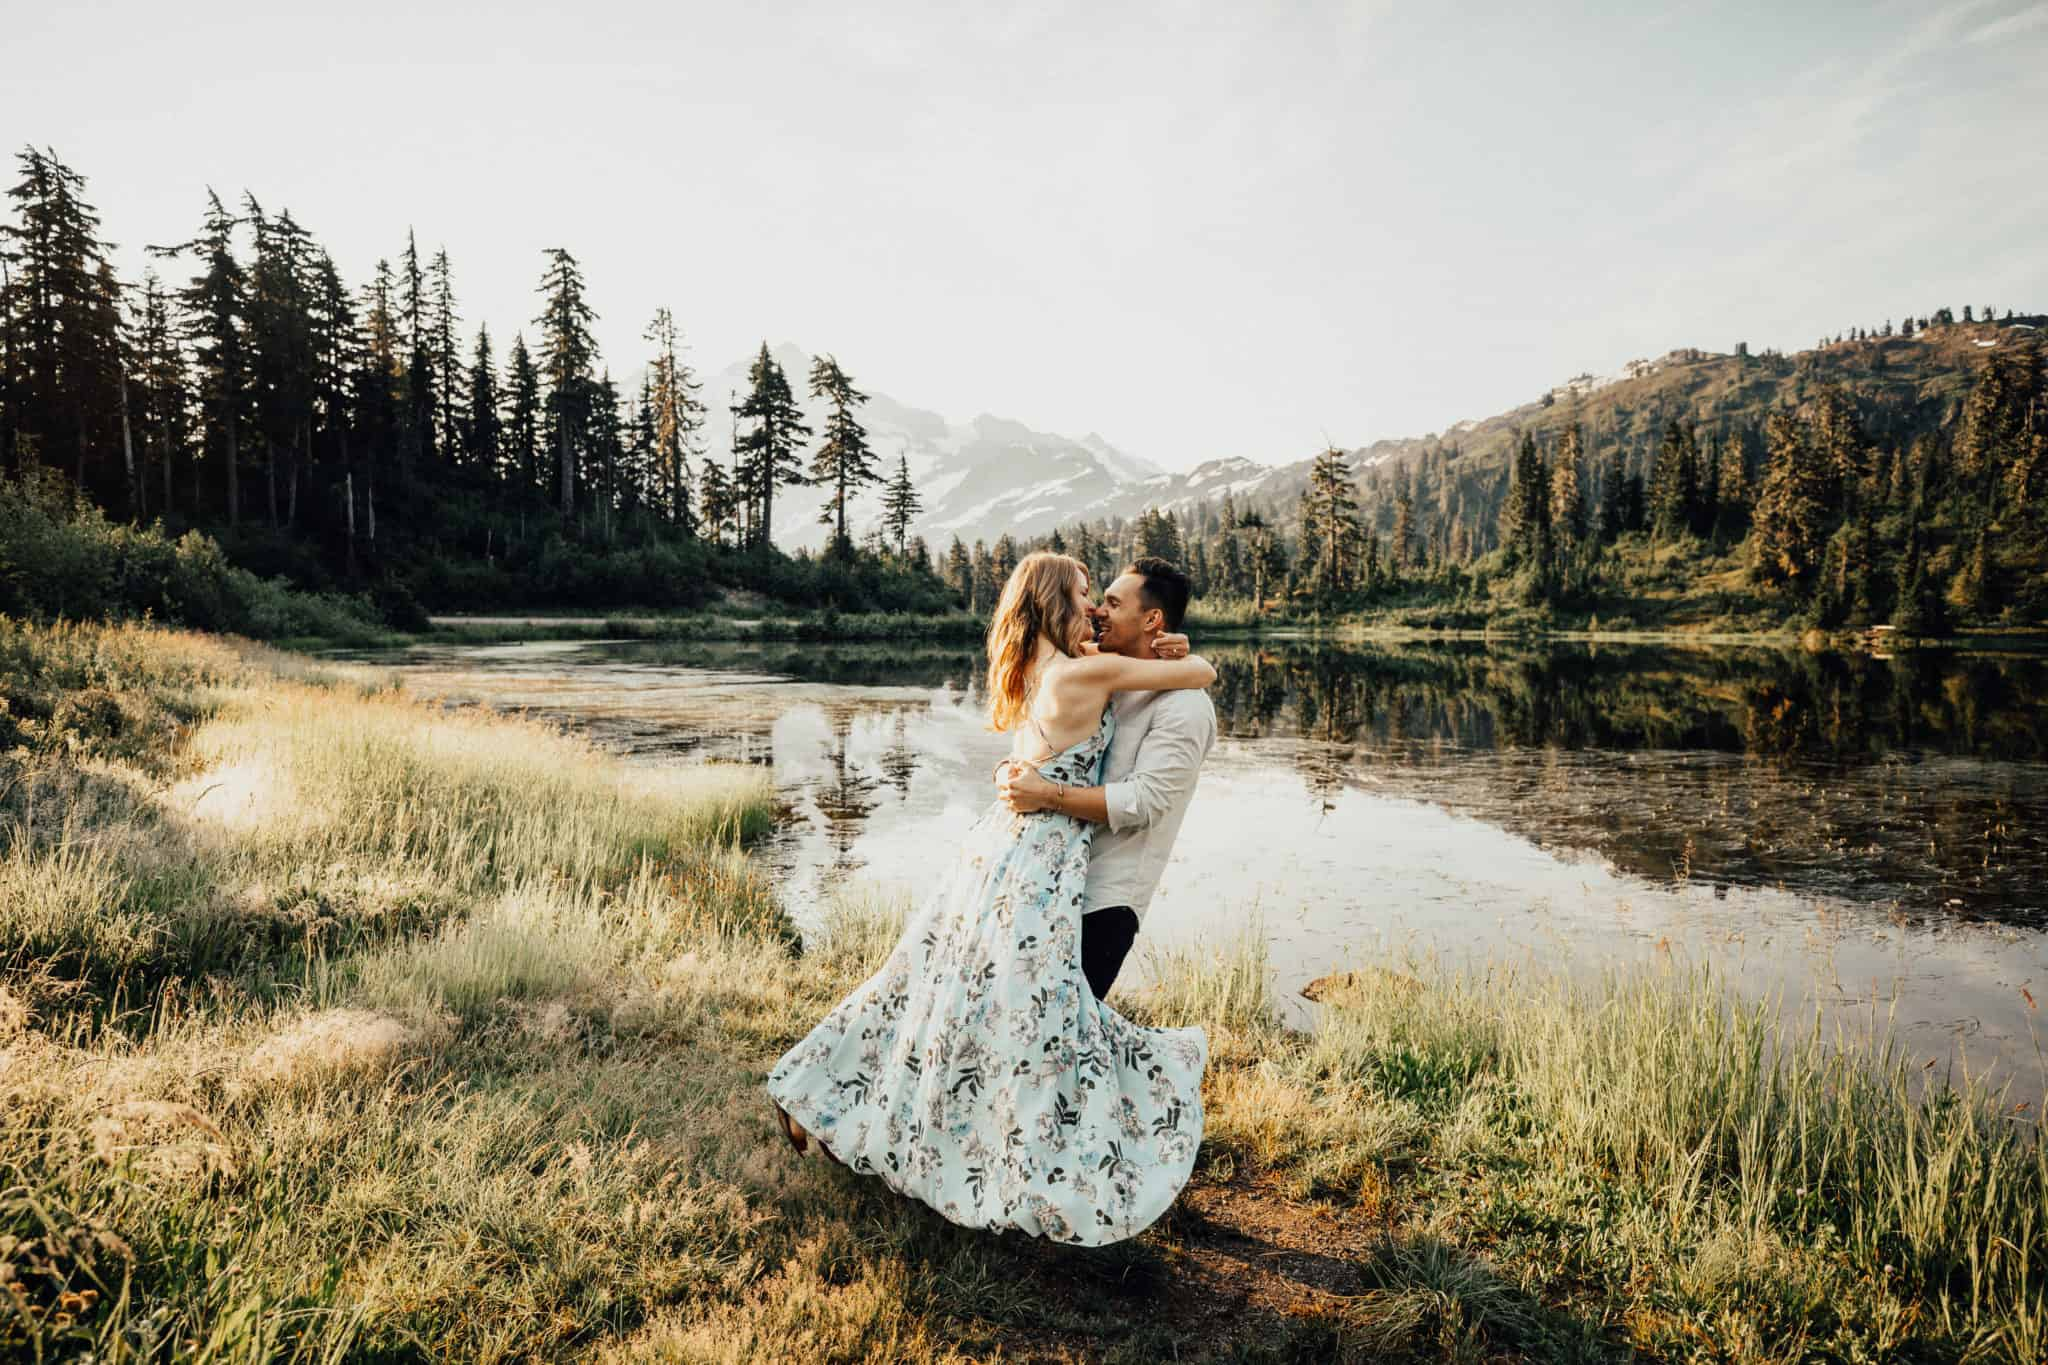 PNW Engagement Shoot Locations - Berty Mandagie